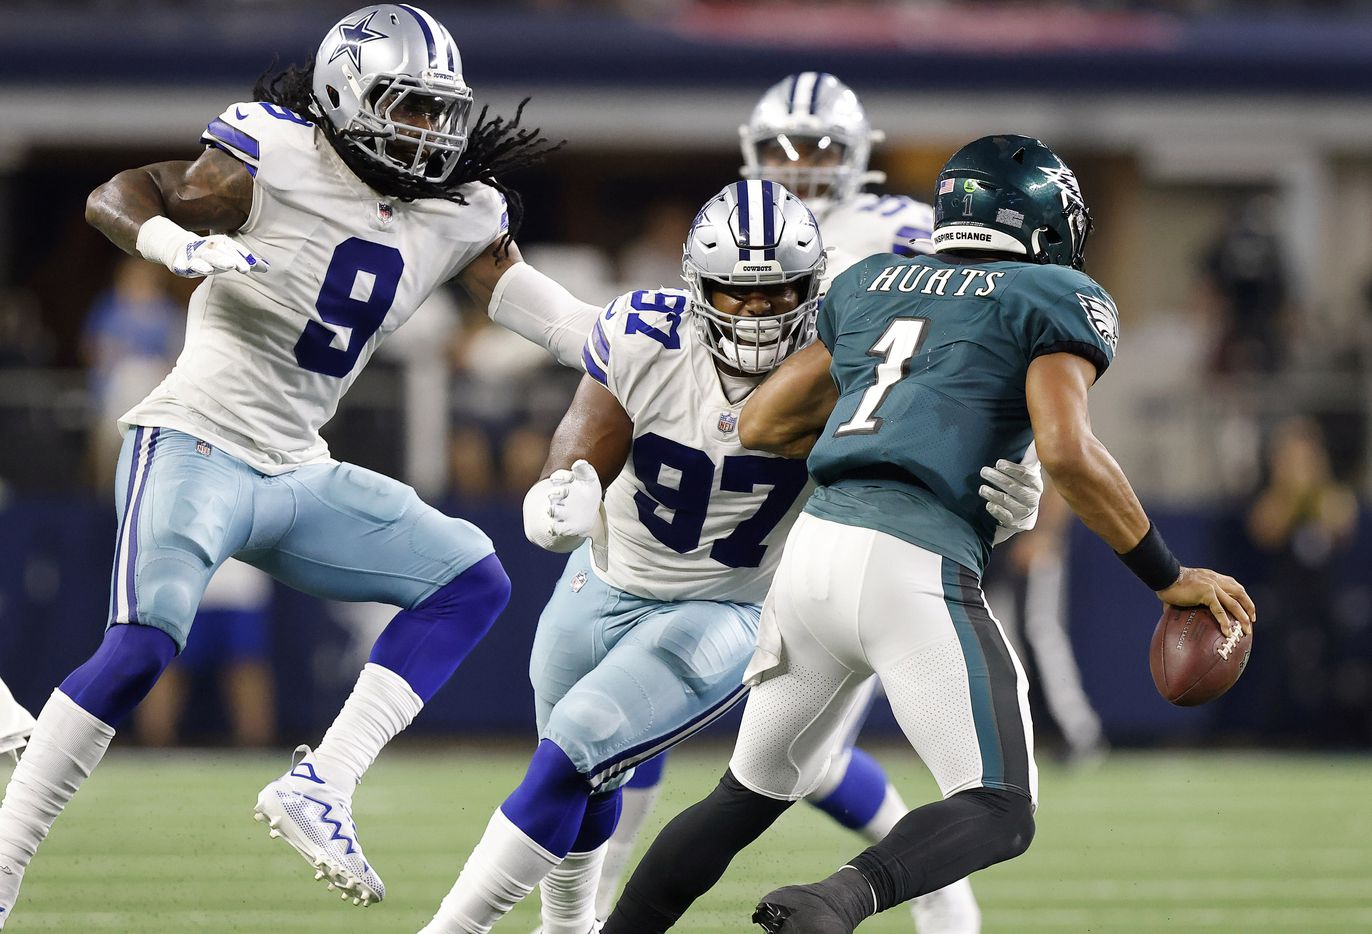 Dallas Cowboys defensive tackle Osa Odighizuwa (97) wraps up Philadelphia Eagles quarterback Jalen Hurts (1) for a fourth quarter sack at AT&T Stadium in Arlington, Monday, September 27, 2021. Middle linebacker Jaylon Smith (9) joined in on the defensive play. The Cowboys won, 41-21. (Tom Fox/The Dallas Morning News)